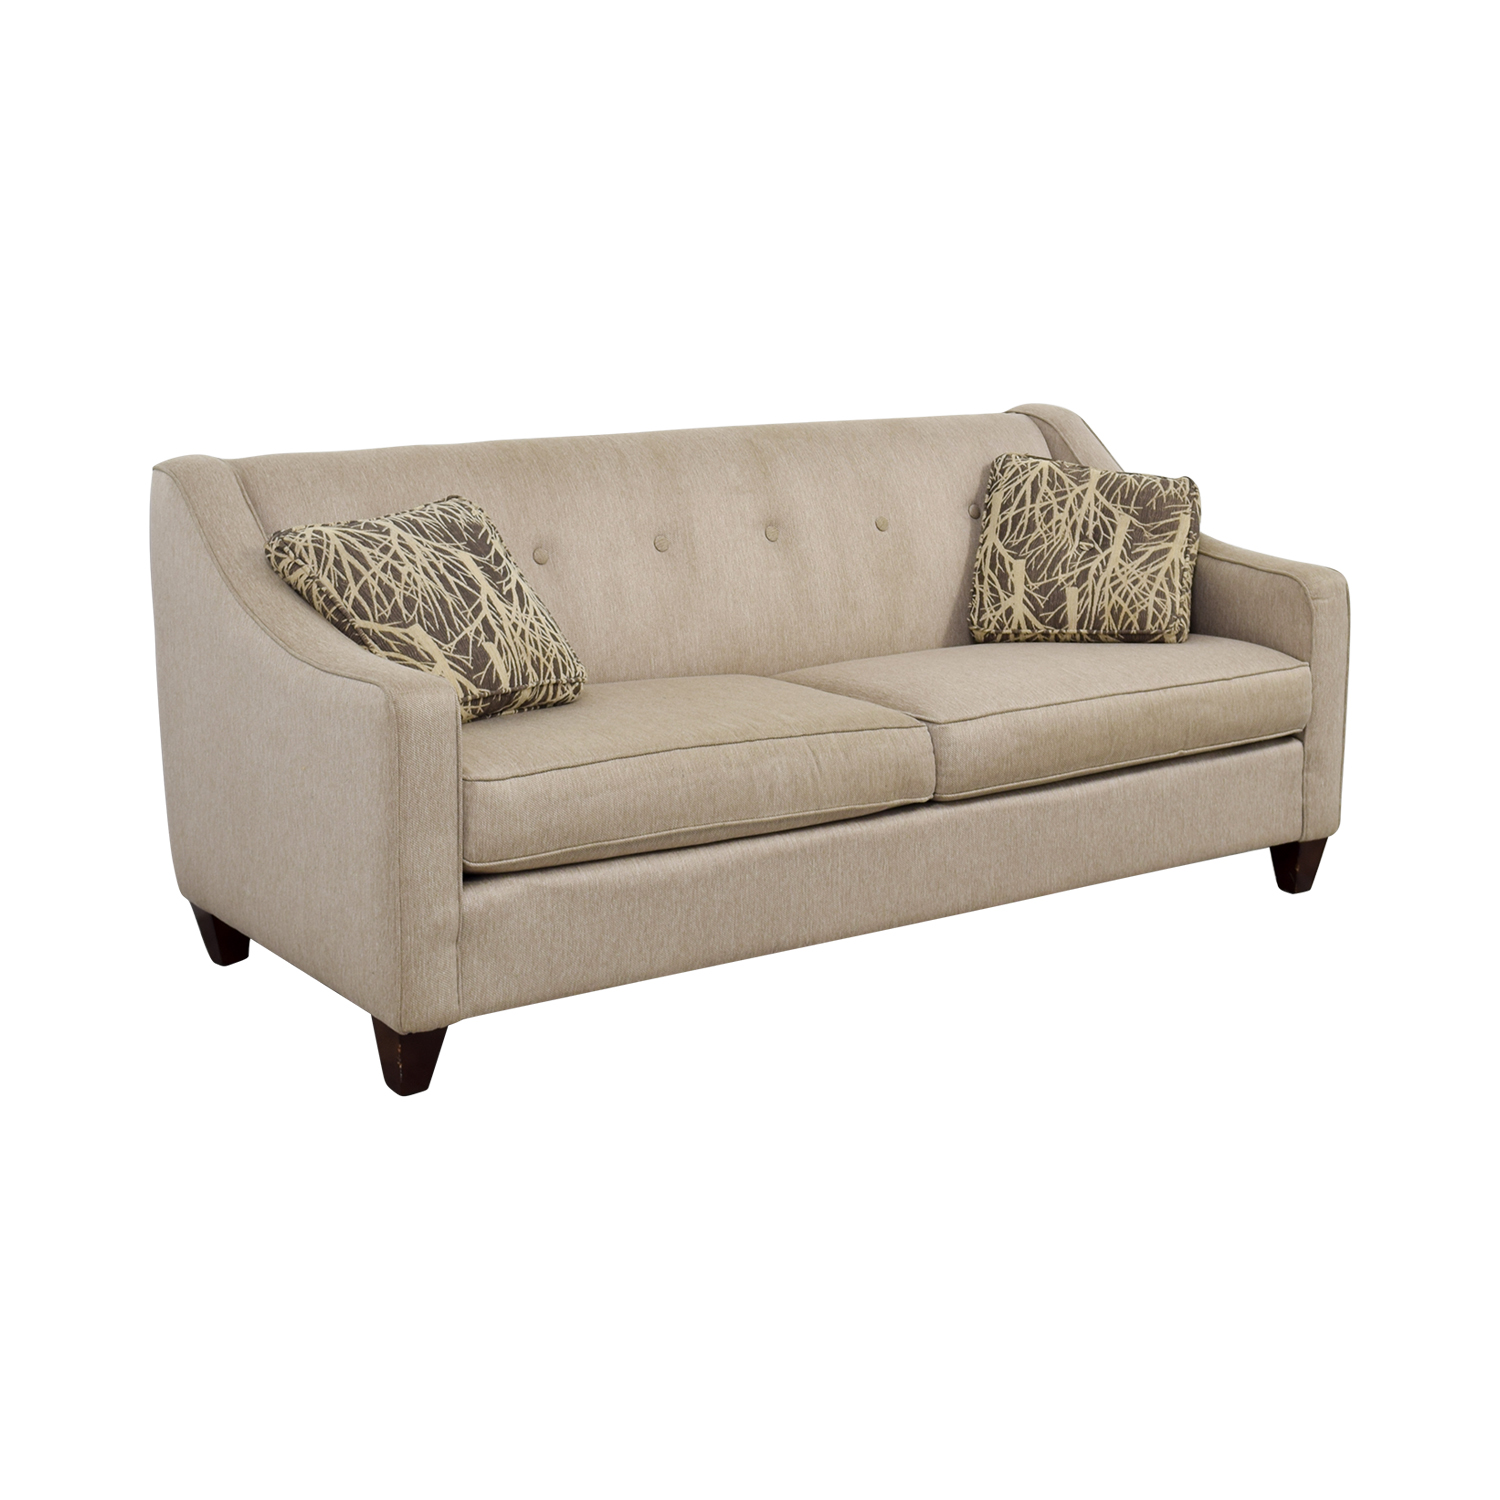 73 off star furniture star furniture colton sofa sofas for Star furniture